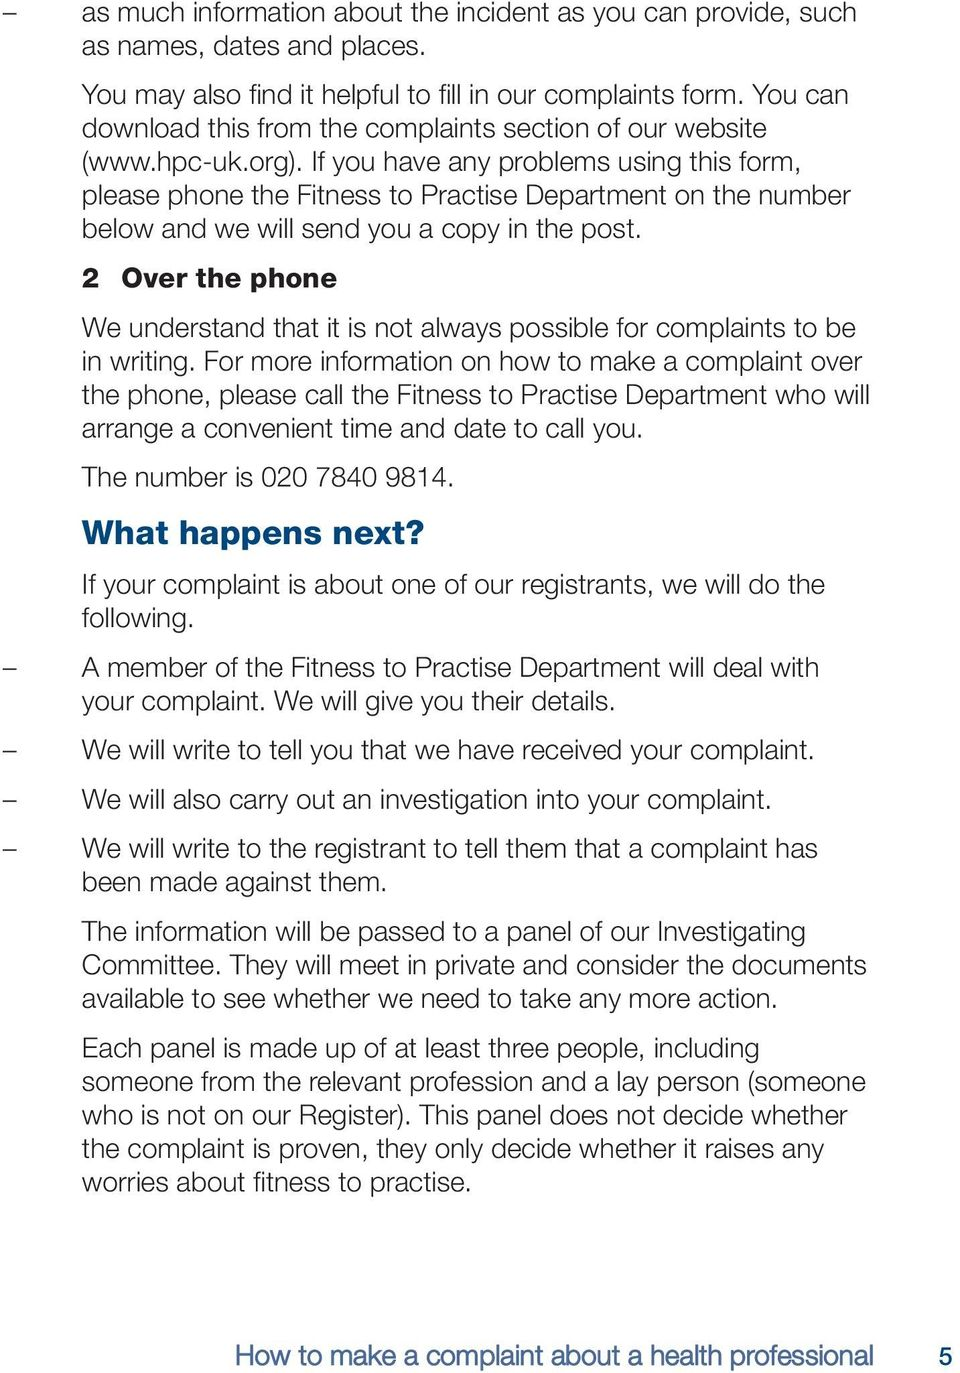 If you have any problems using this form, please phone the Fitness to Practise Department on the number below and we will send you a copy in the post.